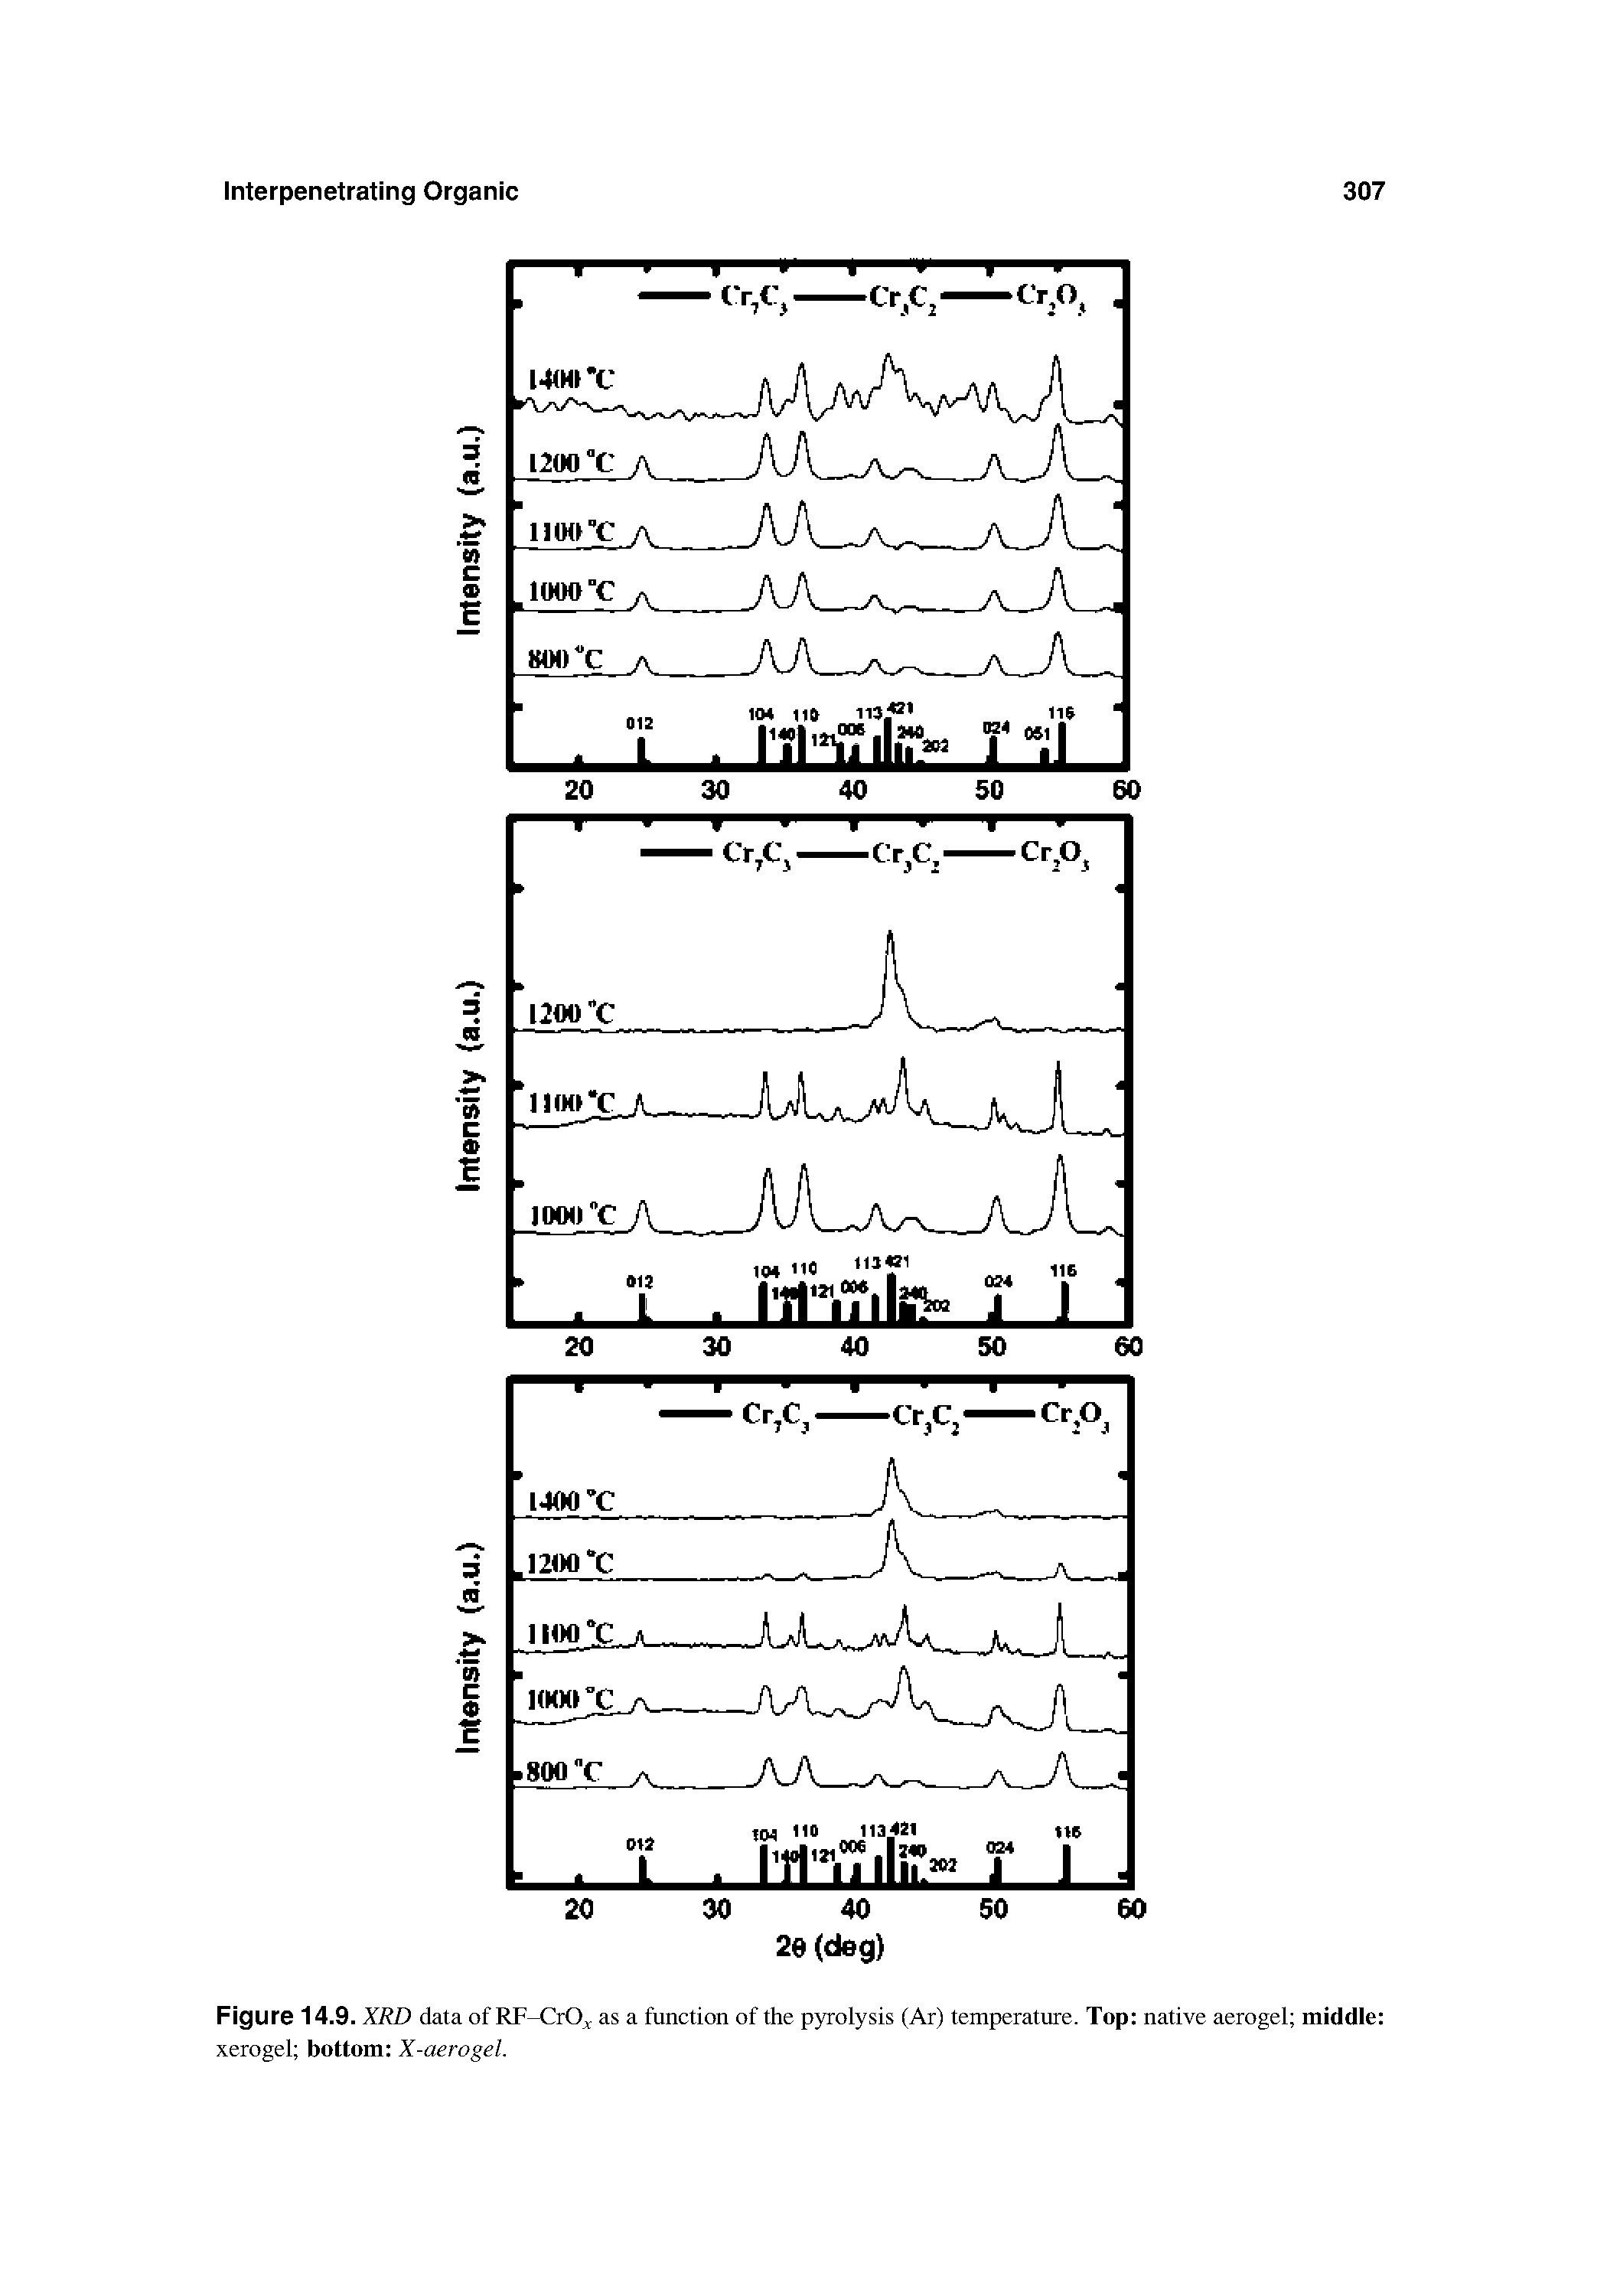 Figure 14.9. XRD data of RF-CrO - as a function of the pyrolysis (Ar) temperature. Top native aerogel middle xerogel bottom X-aerogel.